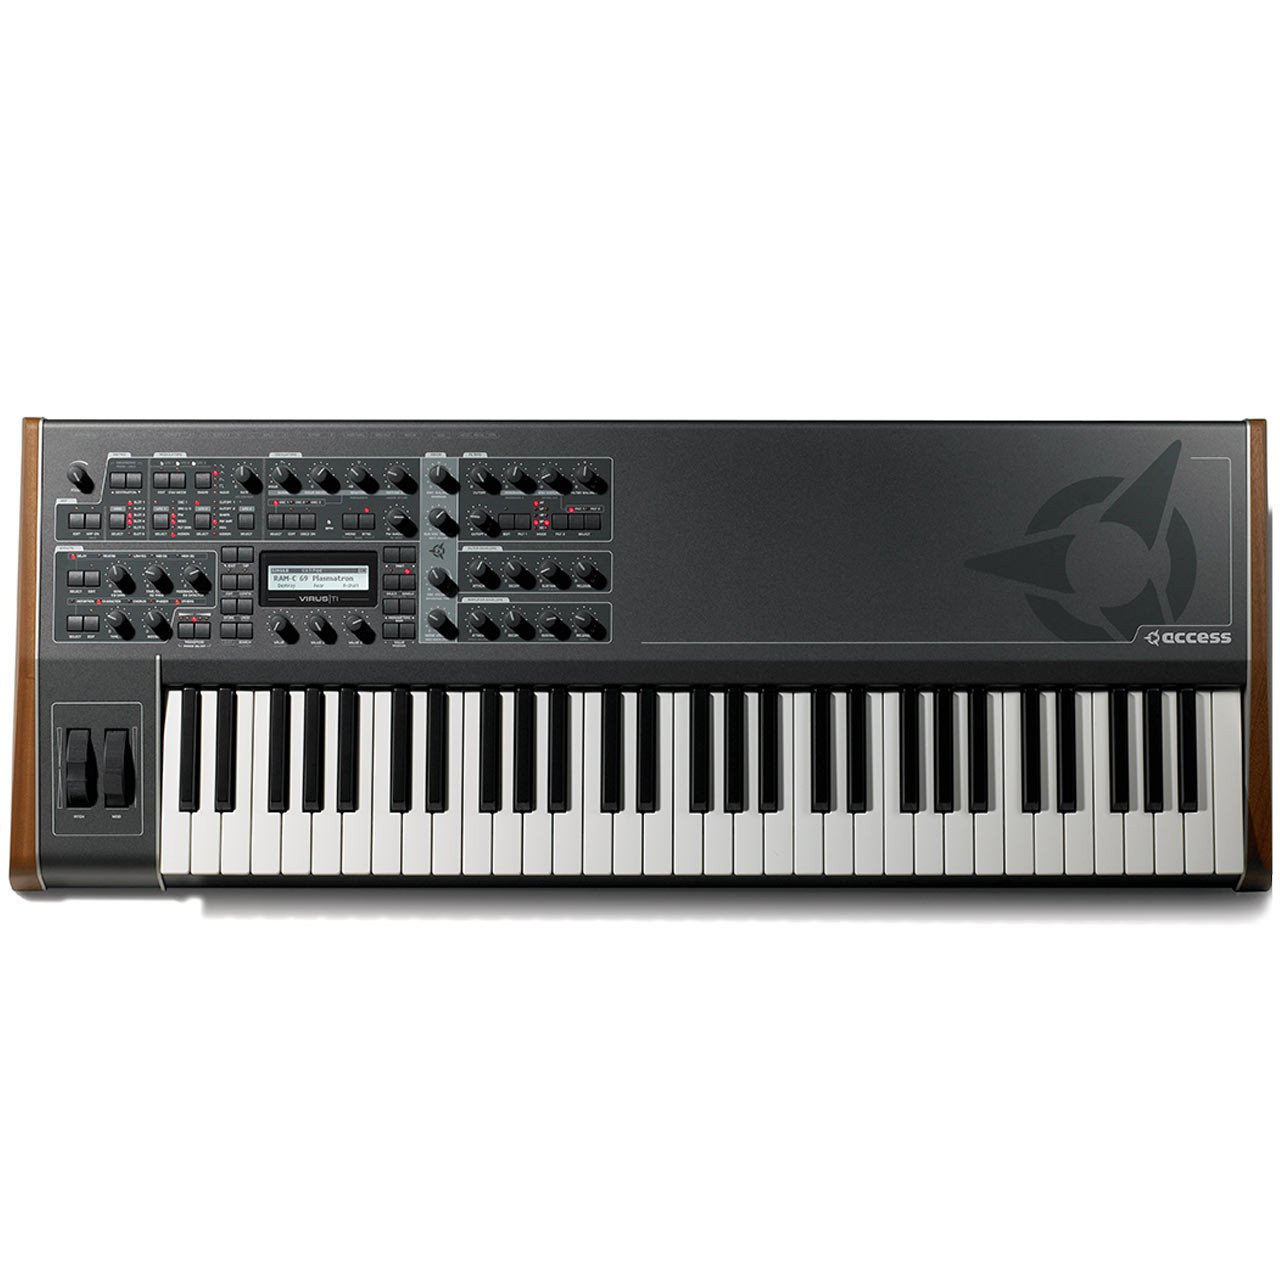 Keyboard Synthesizers - Access Virus TI 2 Keyboard Synthesizer